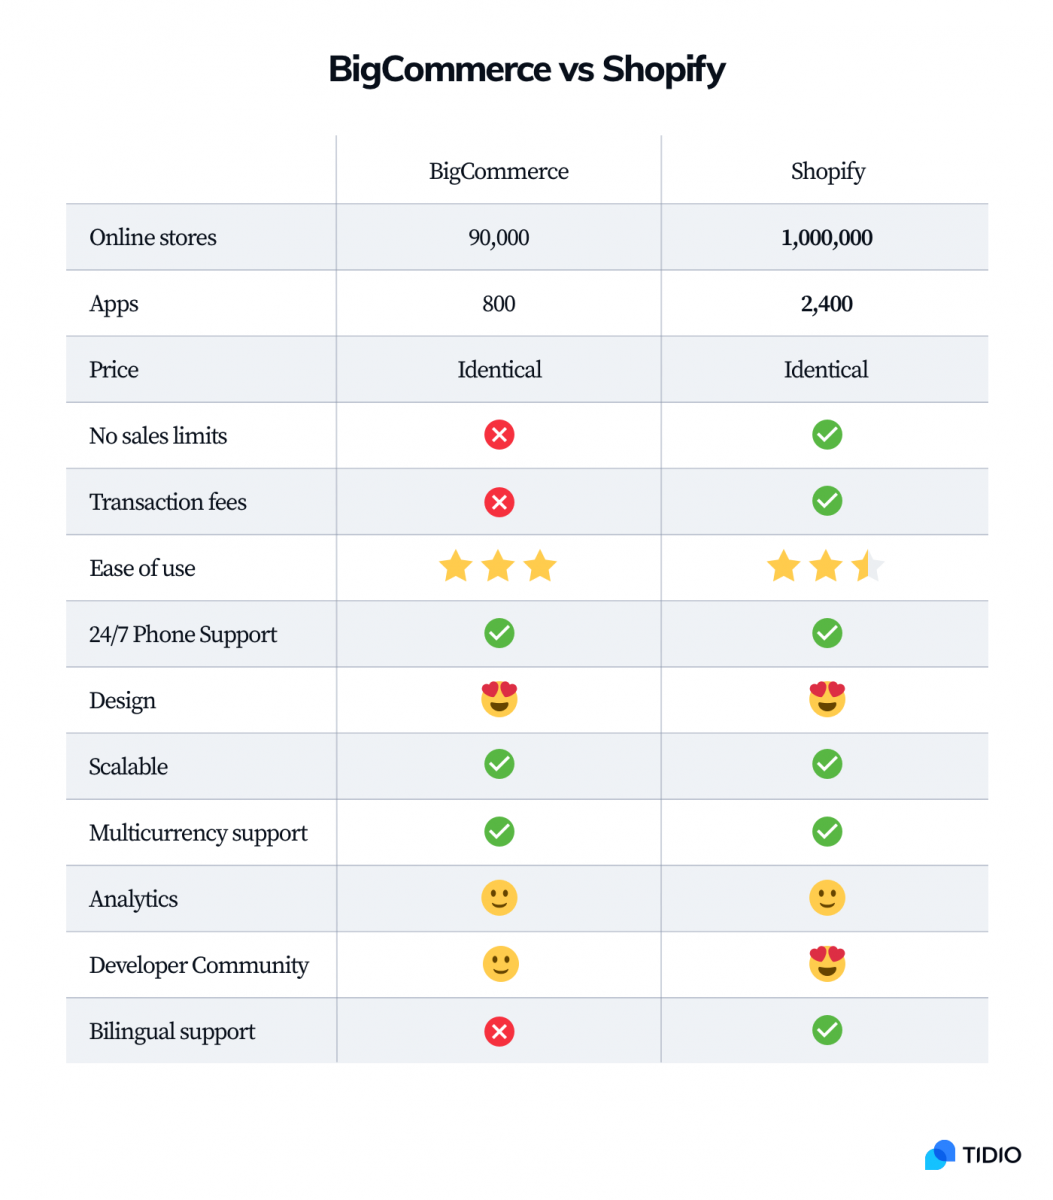 BigCommerce vs Shopify comparison chart with information about the number of users, price, sales limits, transaction fees, design, and analytics.